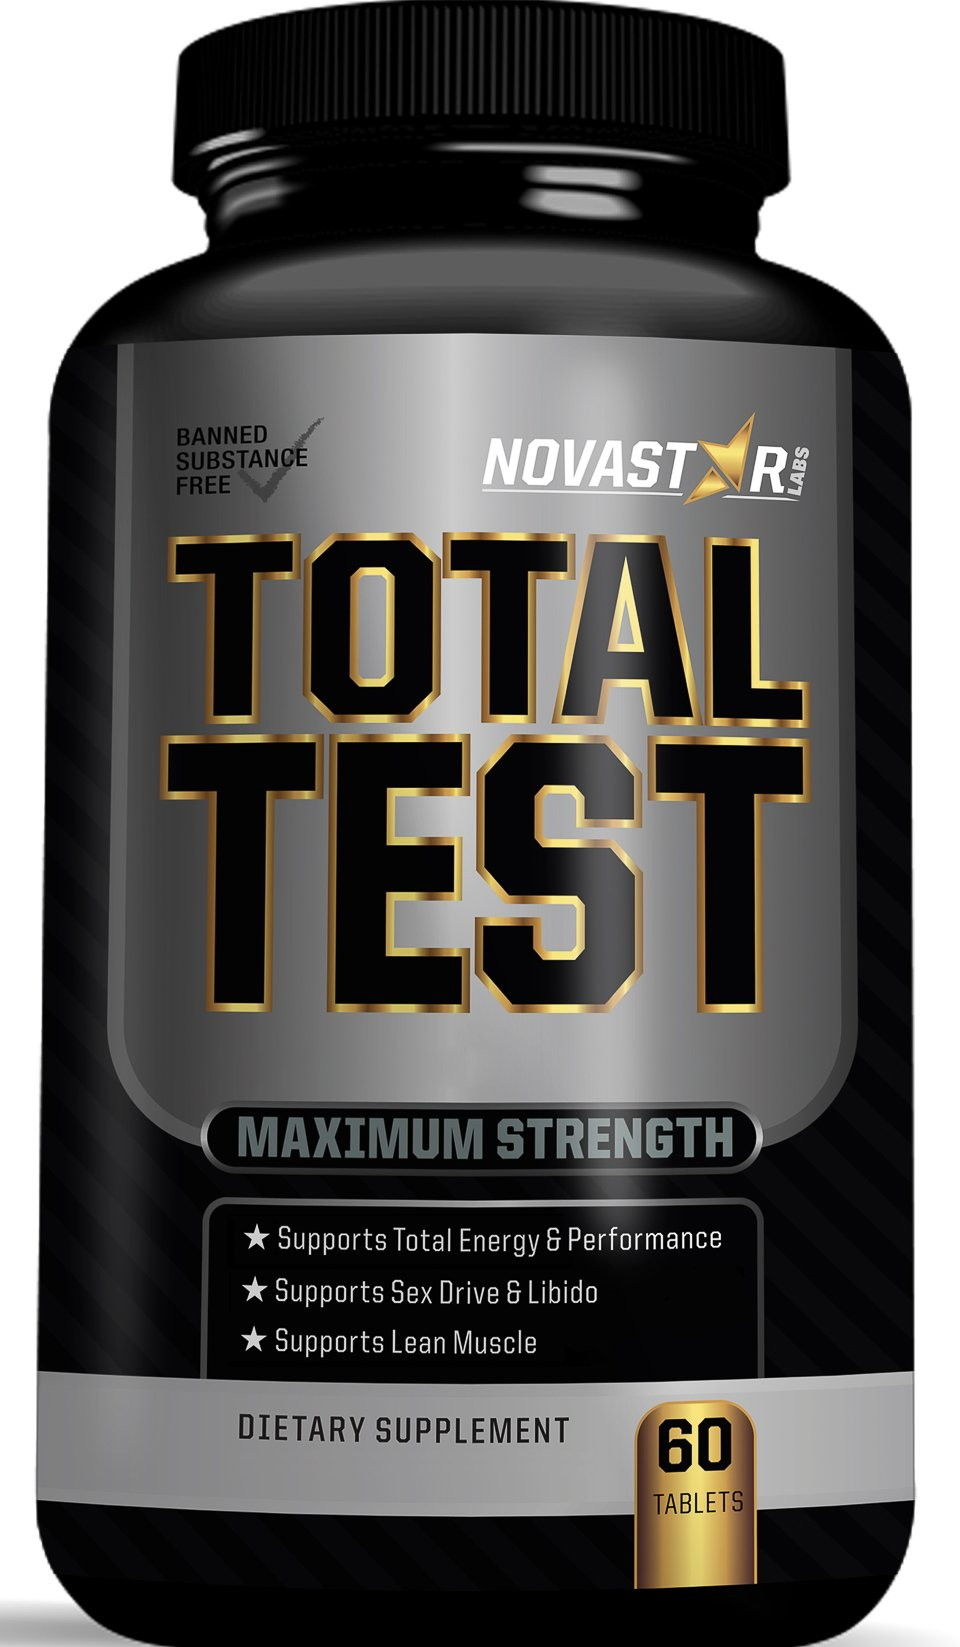 Testosterone Booster by Novastar Labs, Supports Testosterone Production, Enhances Strength, Endurance, Energy, Optimizes Male Performance Libido, Non-GMO, GMP Certified, Made in the USA, 60 Caps